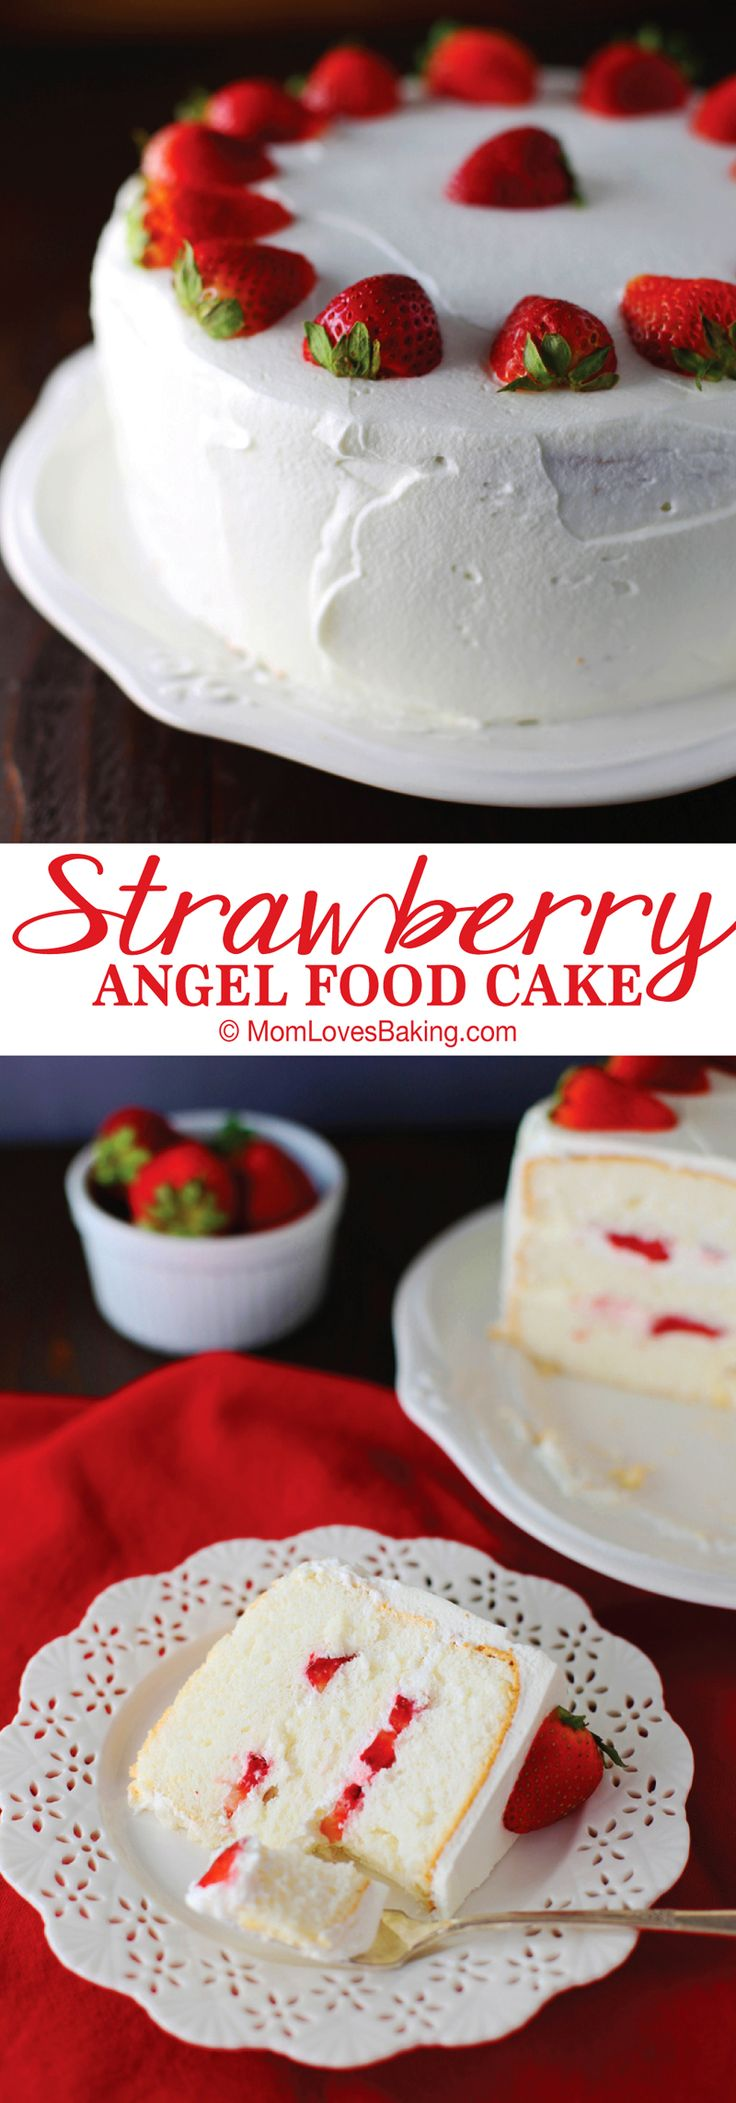 Not only is it a perfect homemade angel food cake with fluffy whipped cream and fresh strawberries, but it's actually low in calories and low in sugar. But not low in flavor. It's just so tasty!